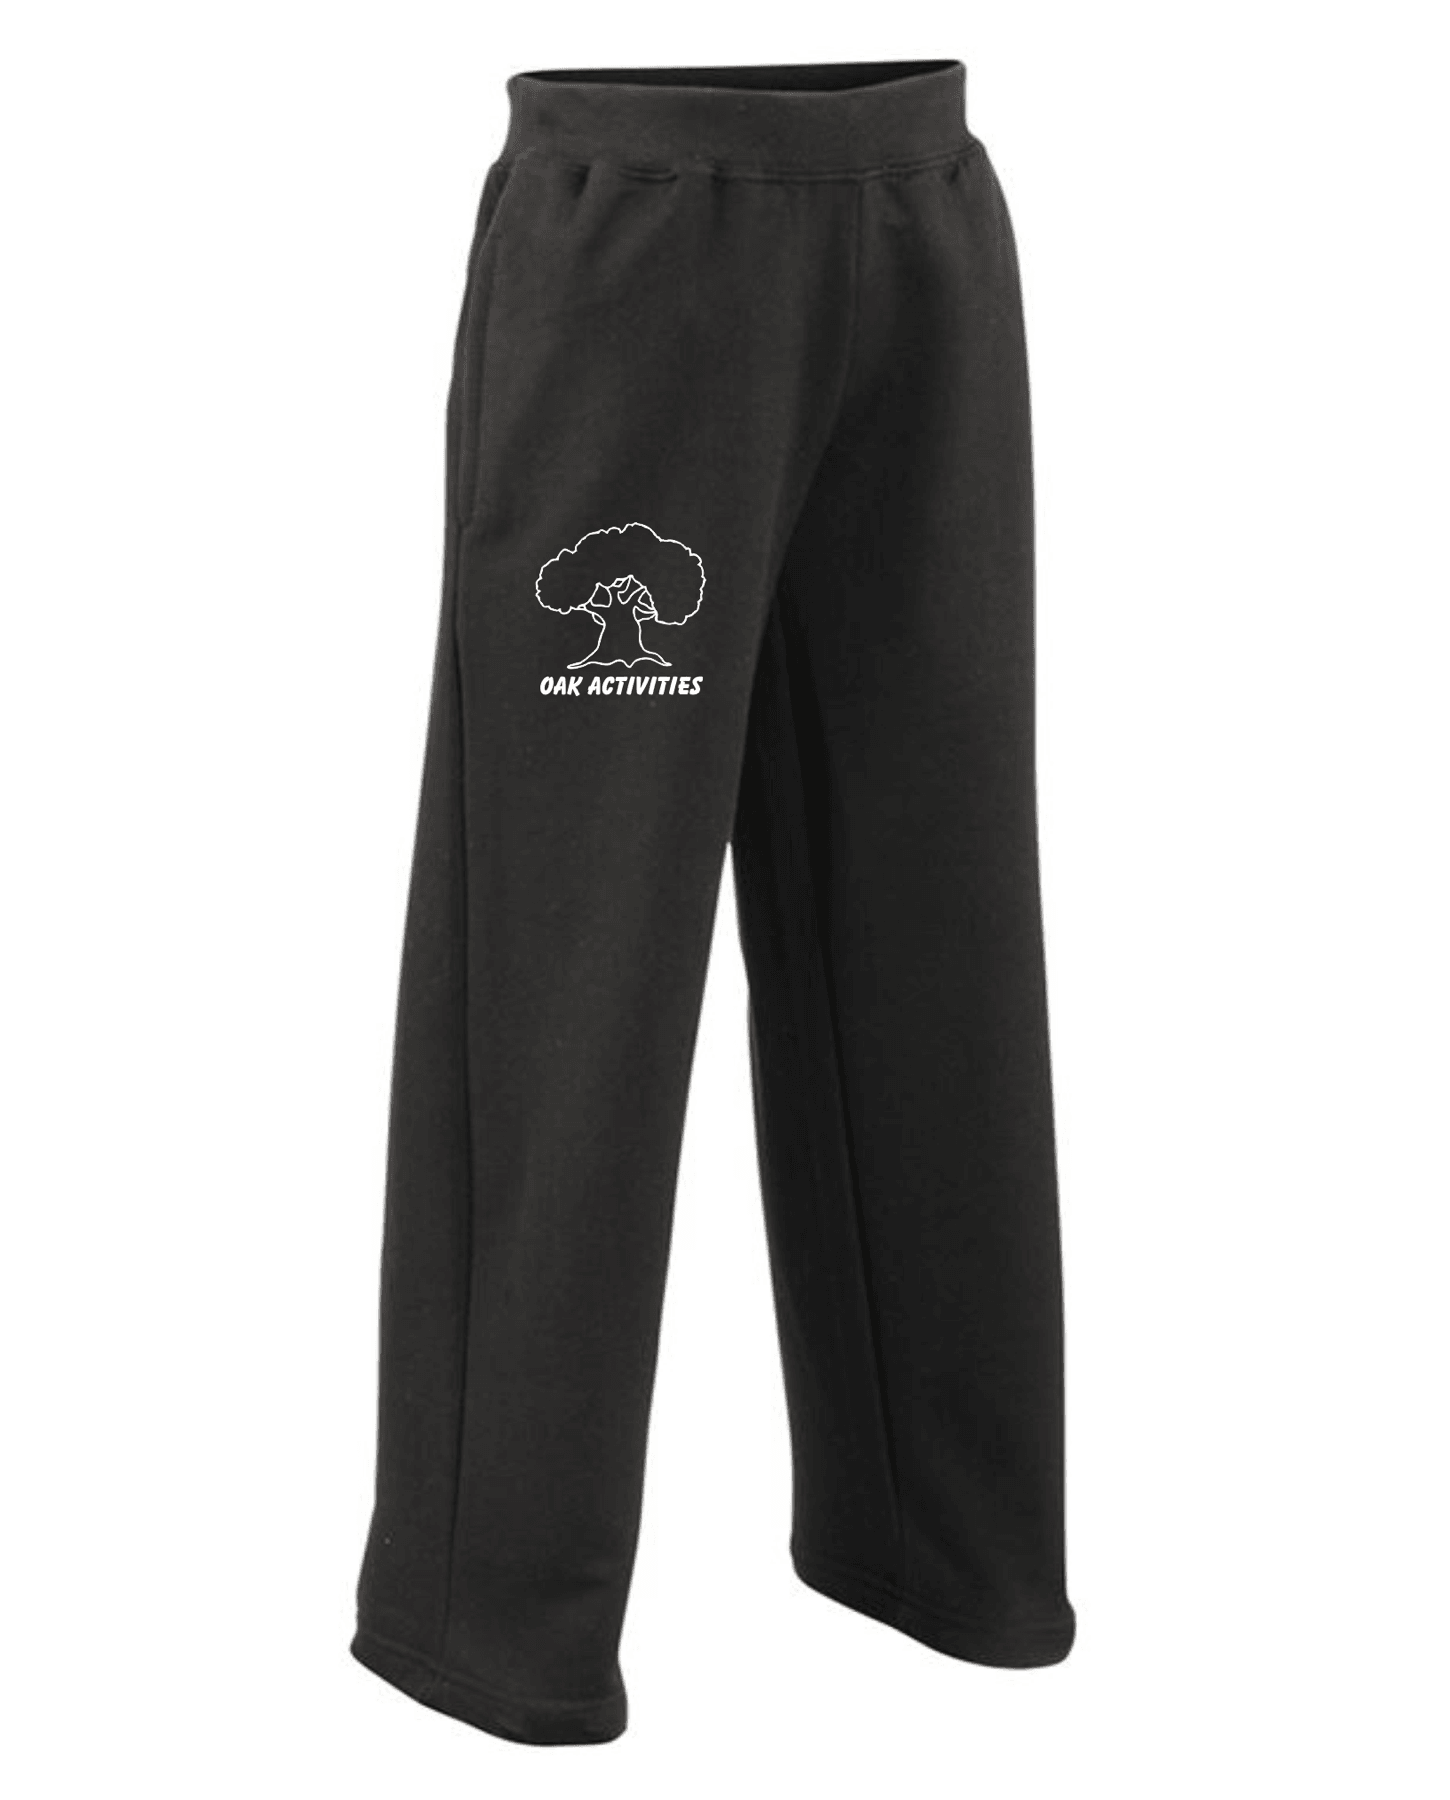 Oak Activities – Kids Sweatpants (Black)